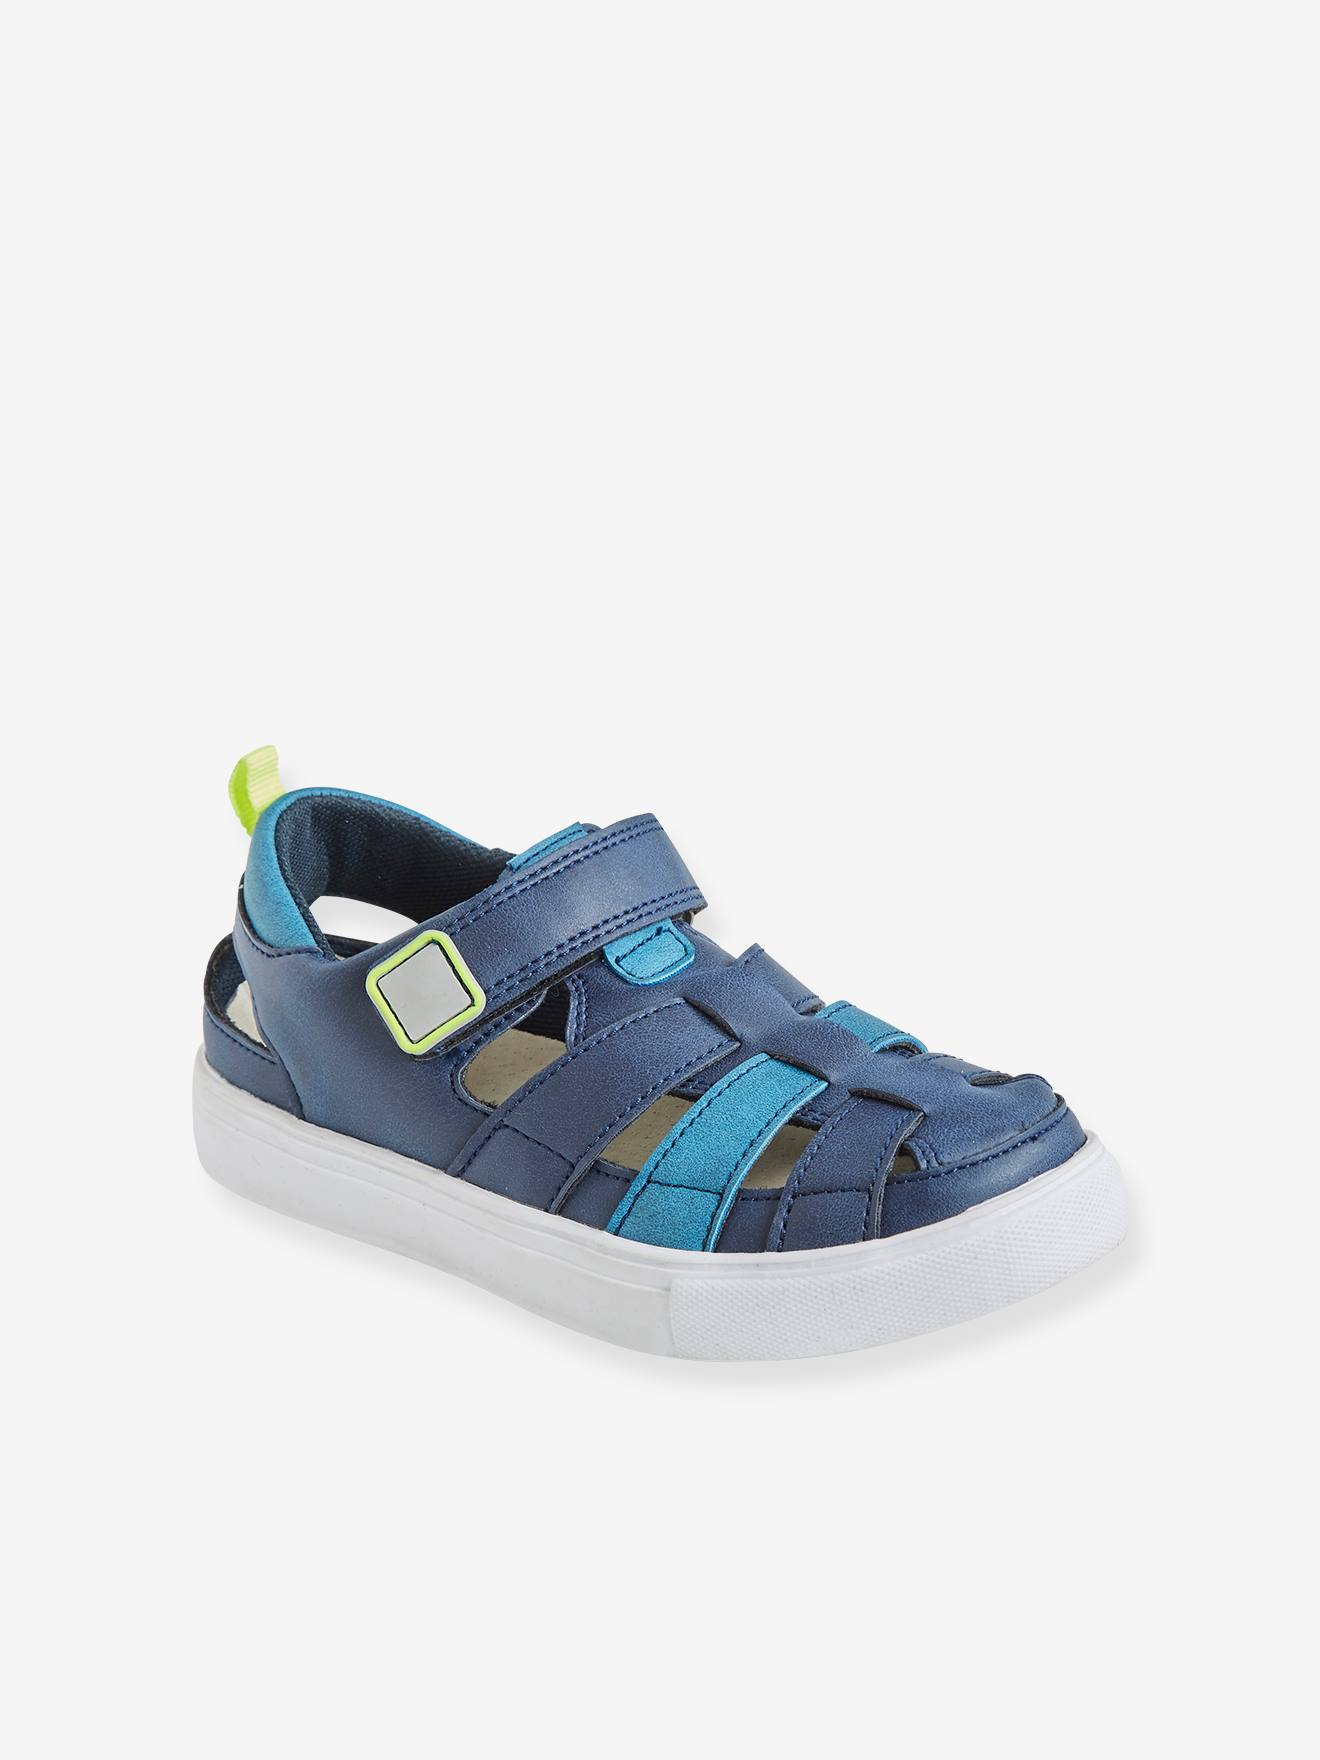 Boys Sandals - Jelly Shoes \u0026 Clogs for